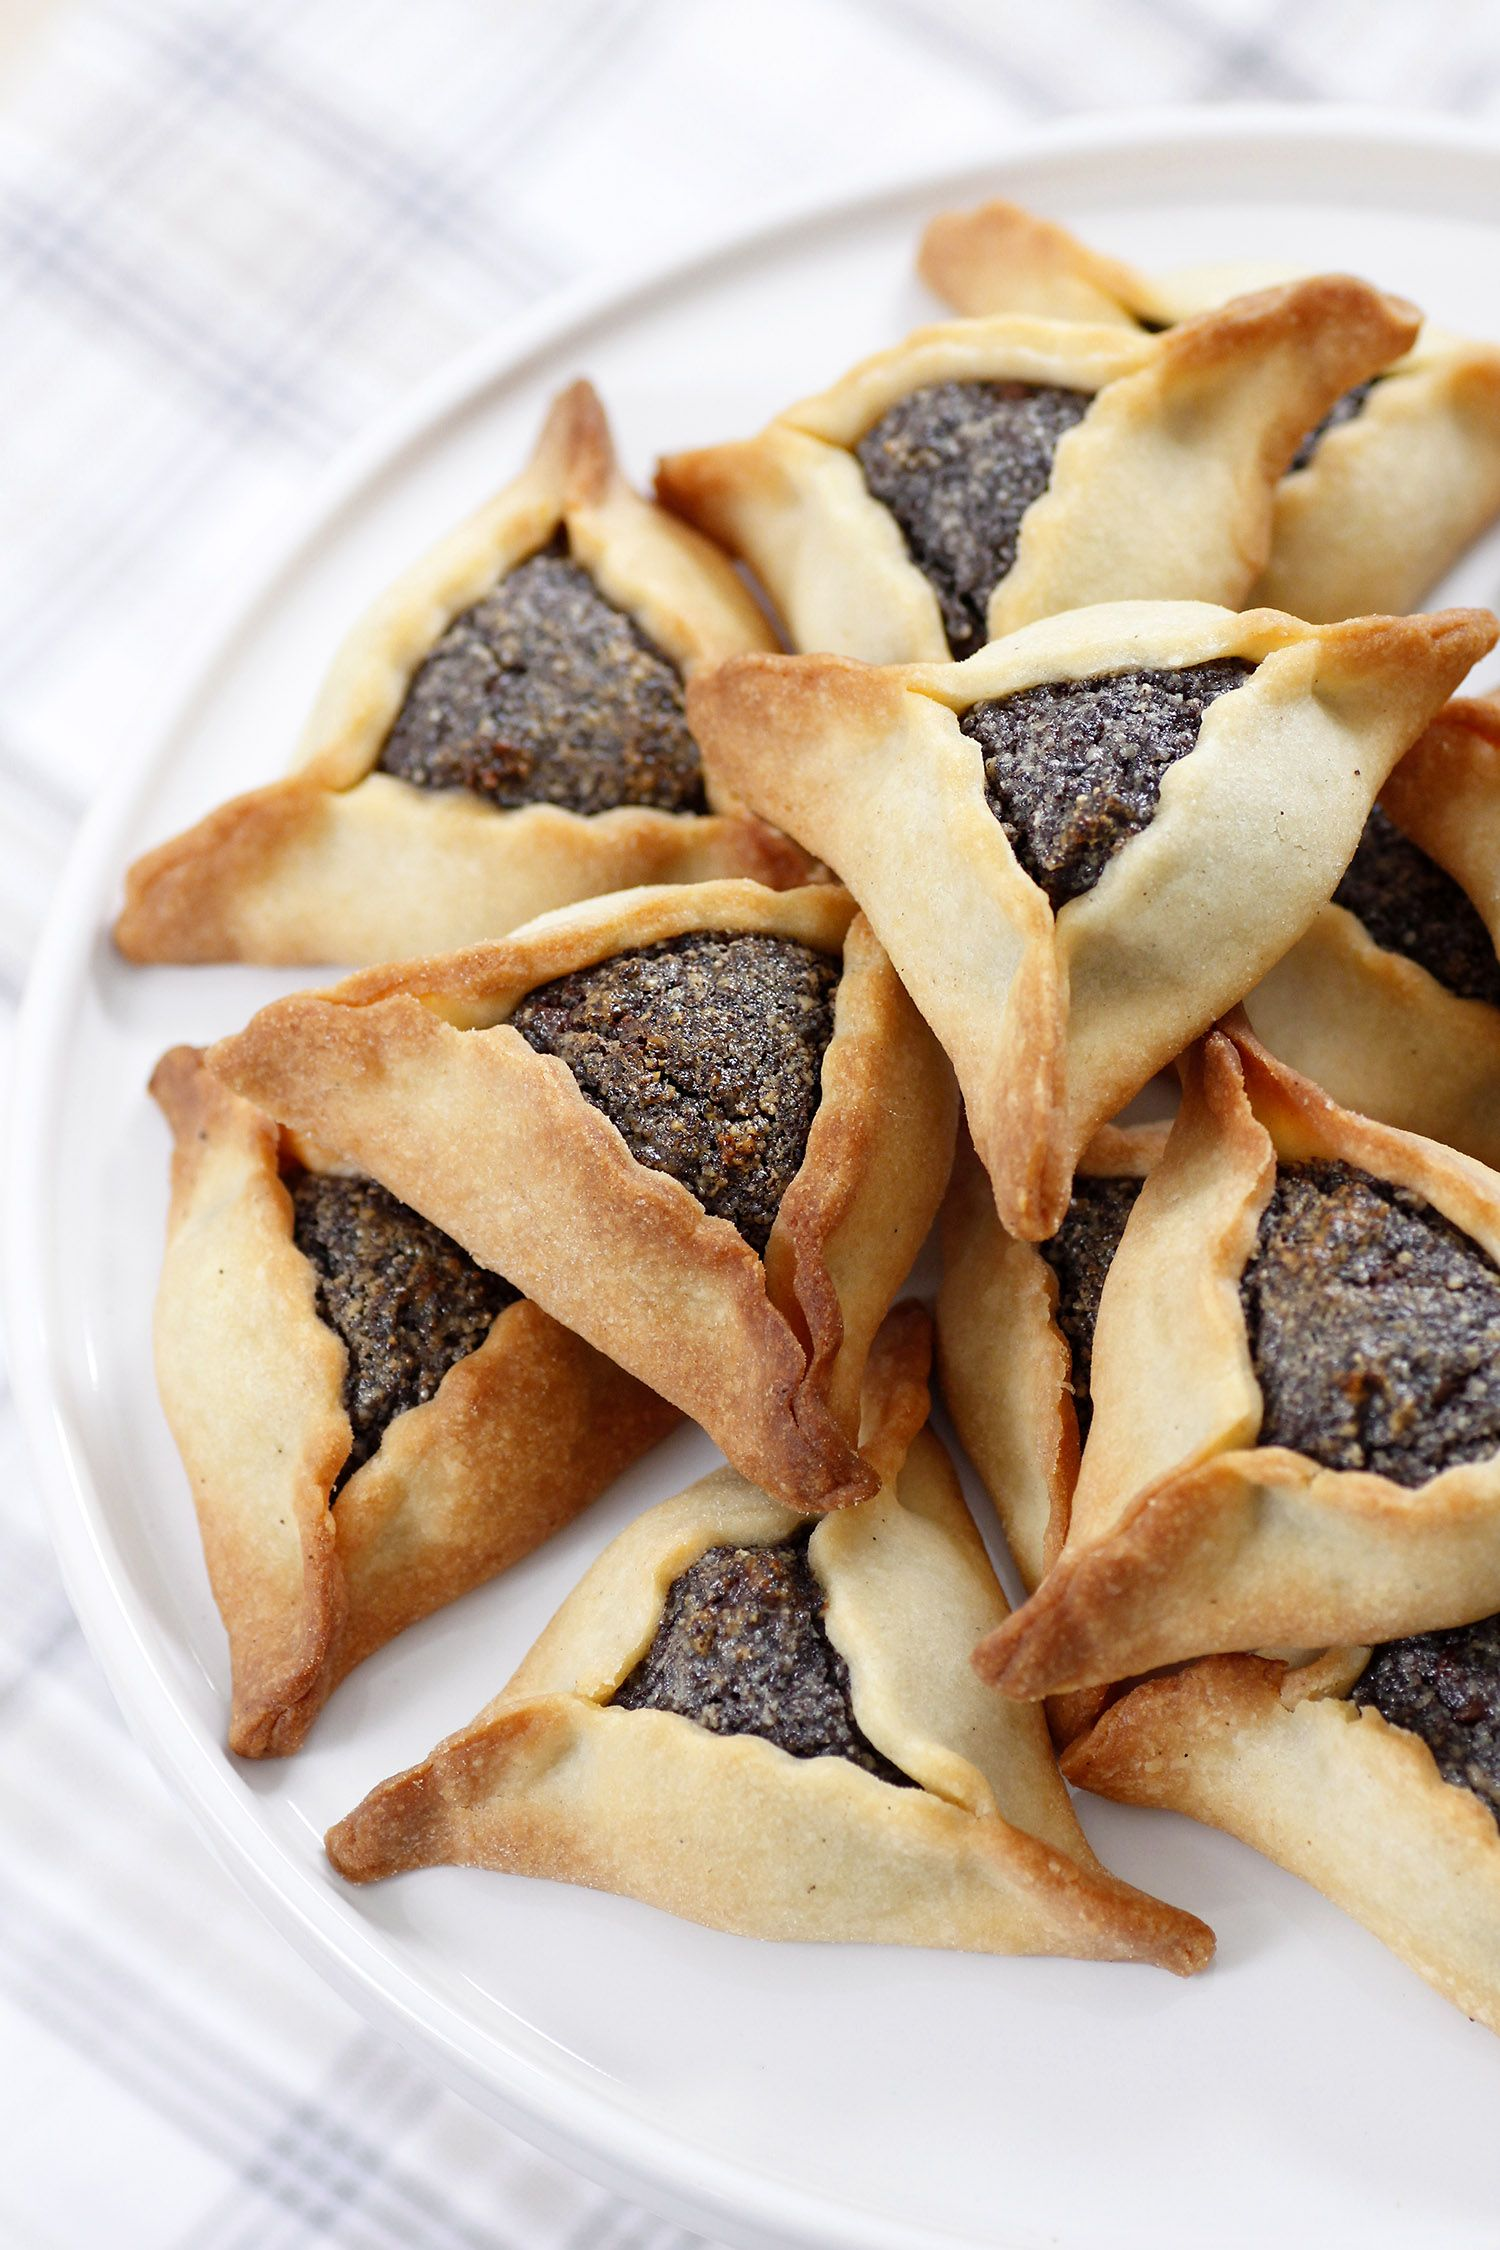 Purim Is One Of My Favorite Holidays Of The Year I Love The Joyous Vibe That S All Around The Colorfulness In The Stre Hamantaschen Food Hamantaschen Cookies